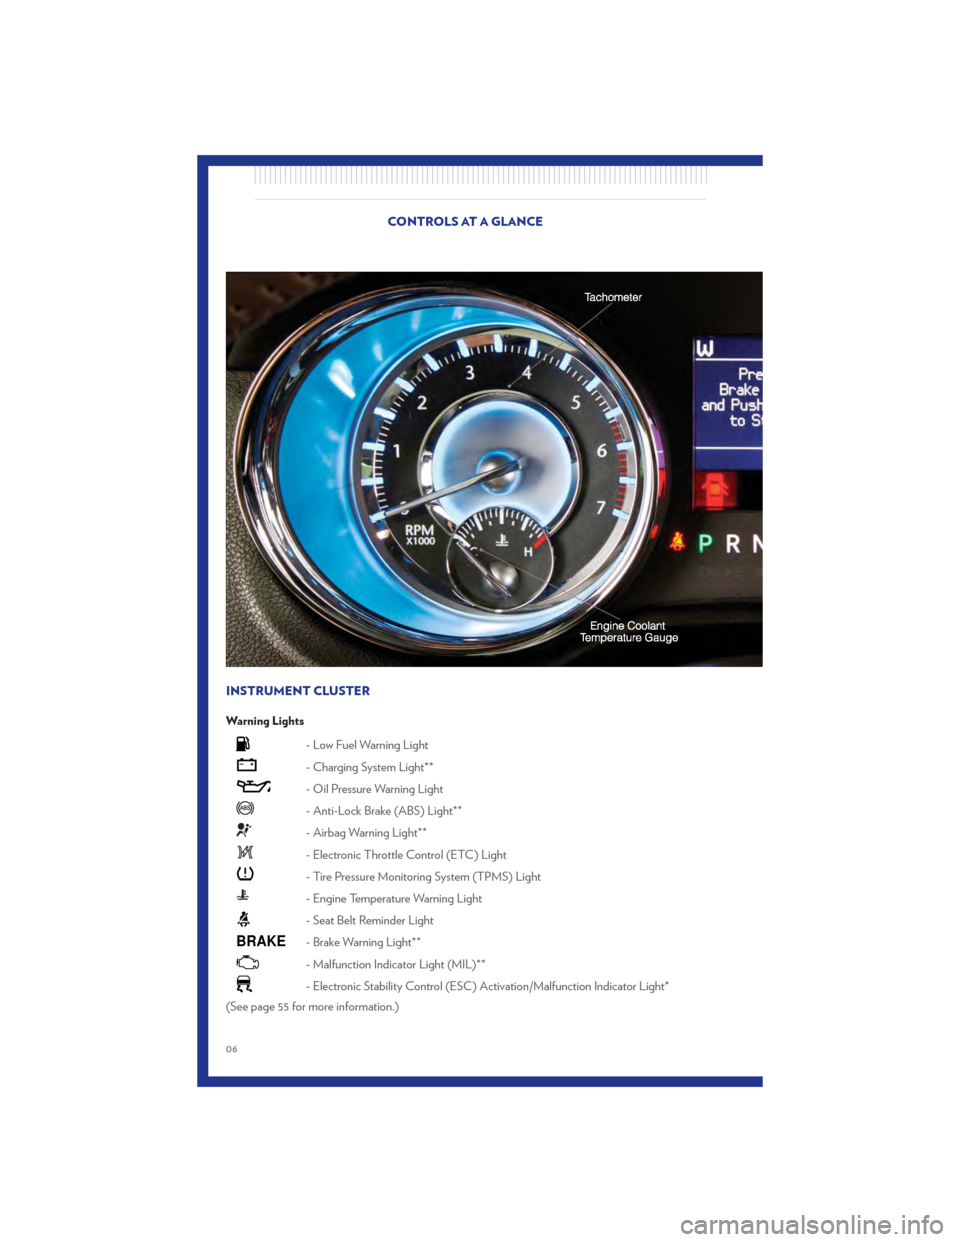 CHRYSLER 300 2011 2.G User Guide, Page 8